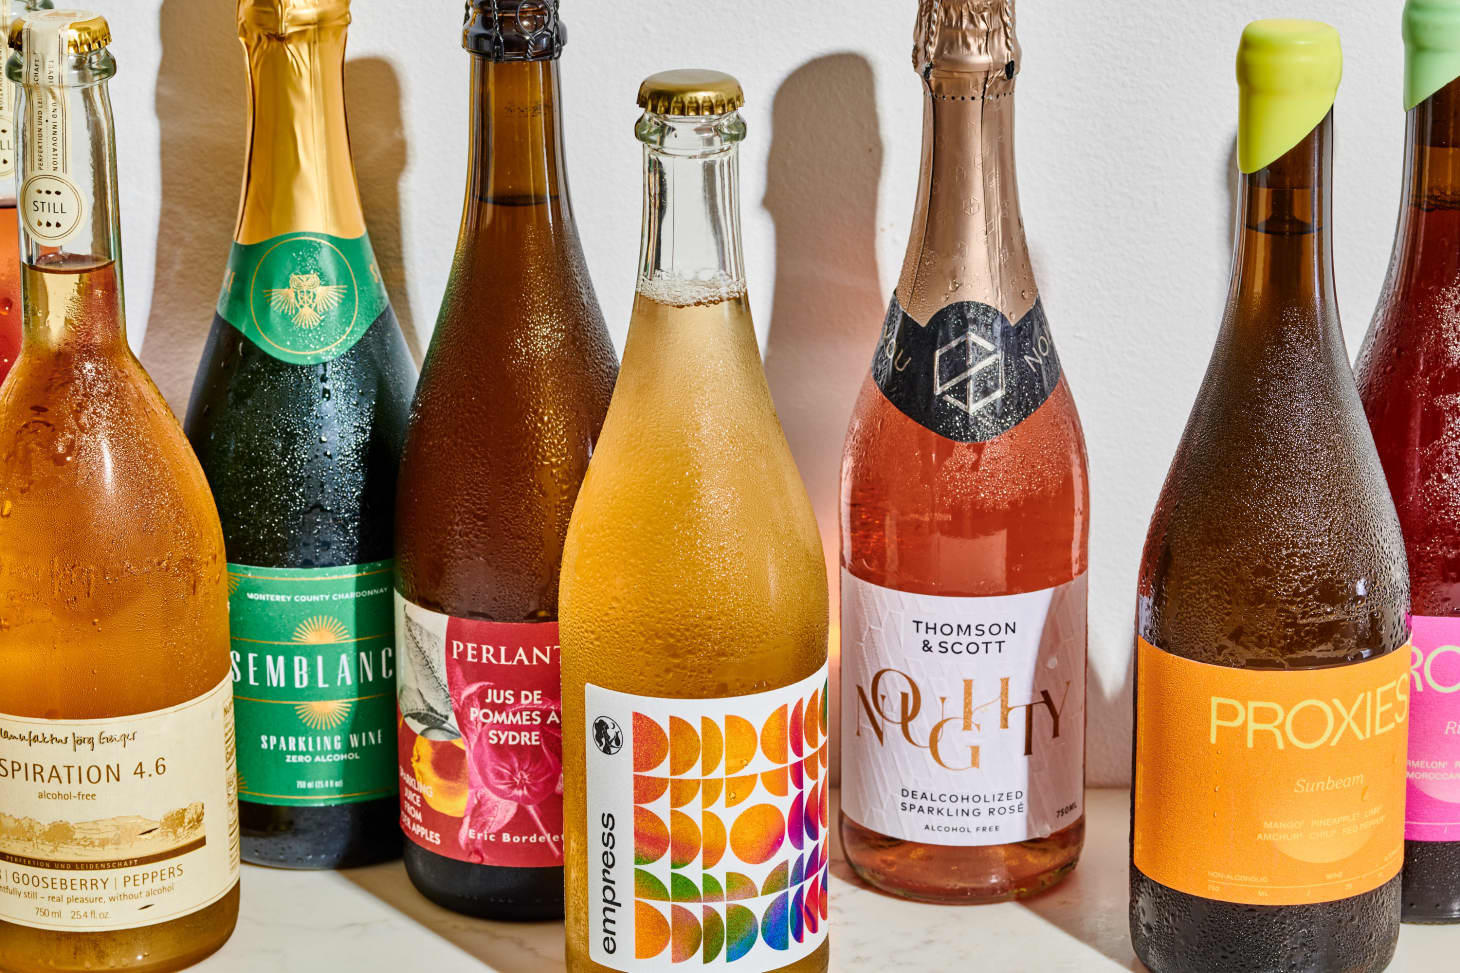 US Megasite The Kitchn has reviewed the best in new alcohol-free options for discerning drinkers and has included Noughty as a 'favorite'...